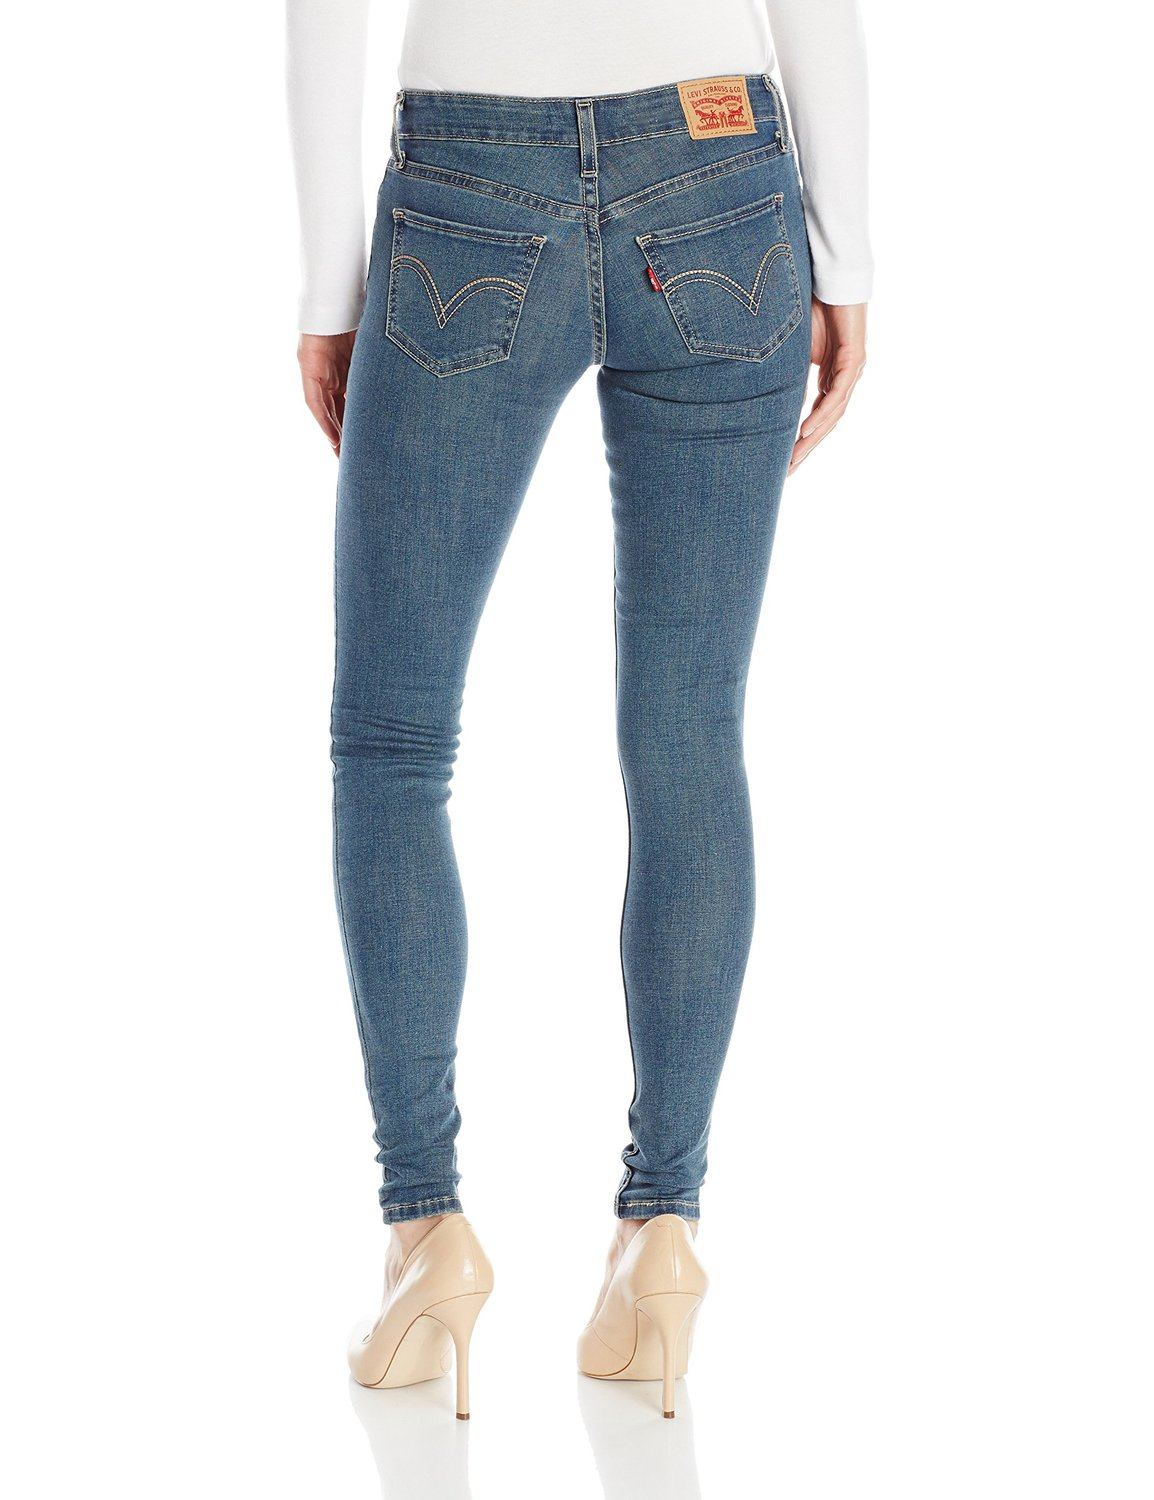 Levi's Juniors 535 Legging Jean - medium Blue (0260)